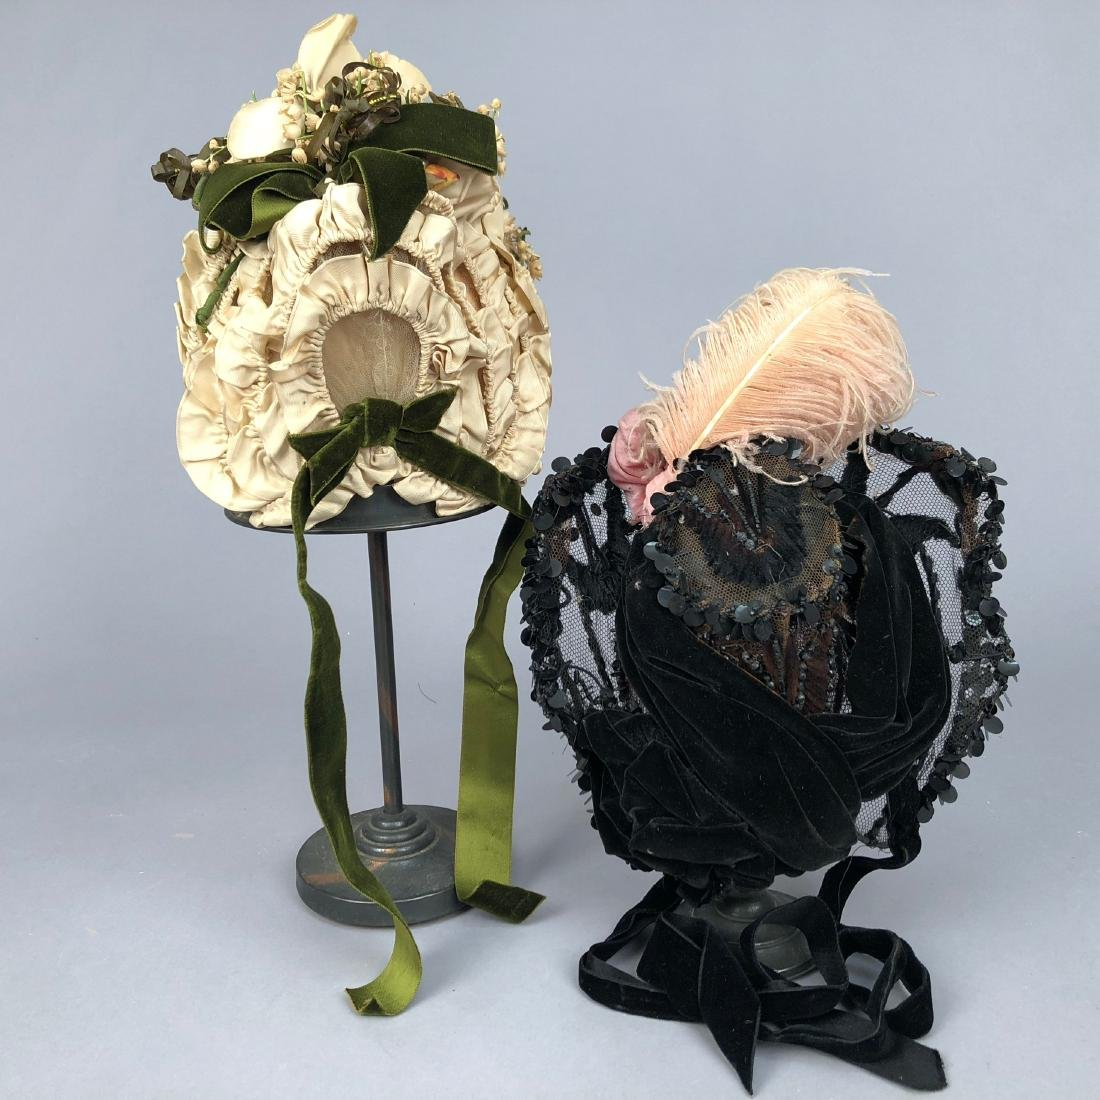 TWO WIRED BONNETS worn by JULIA BUTTERFIELD, 1890